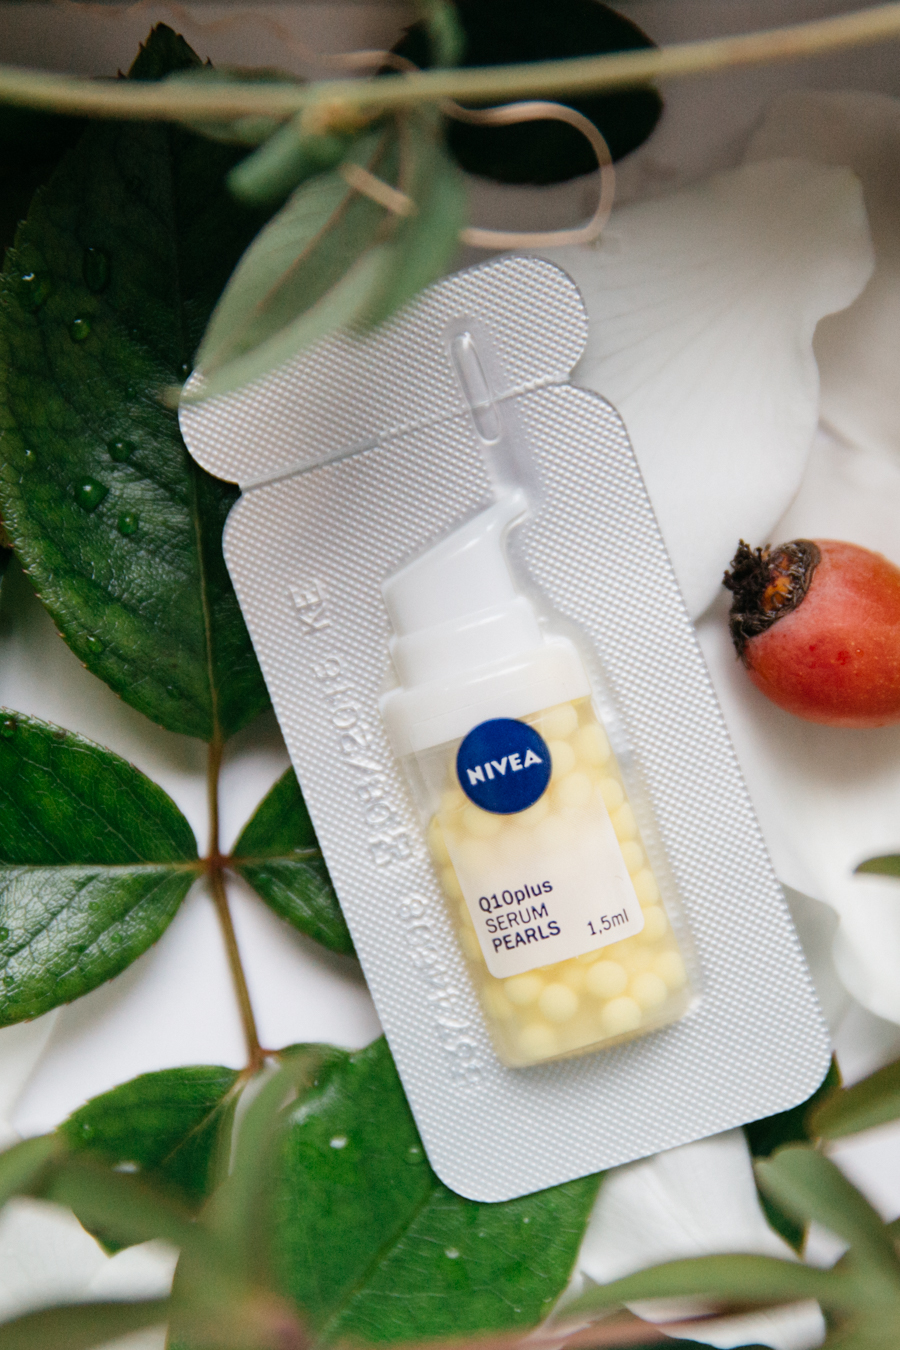 Nivea Q10plus serum pearls review.